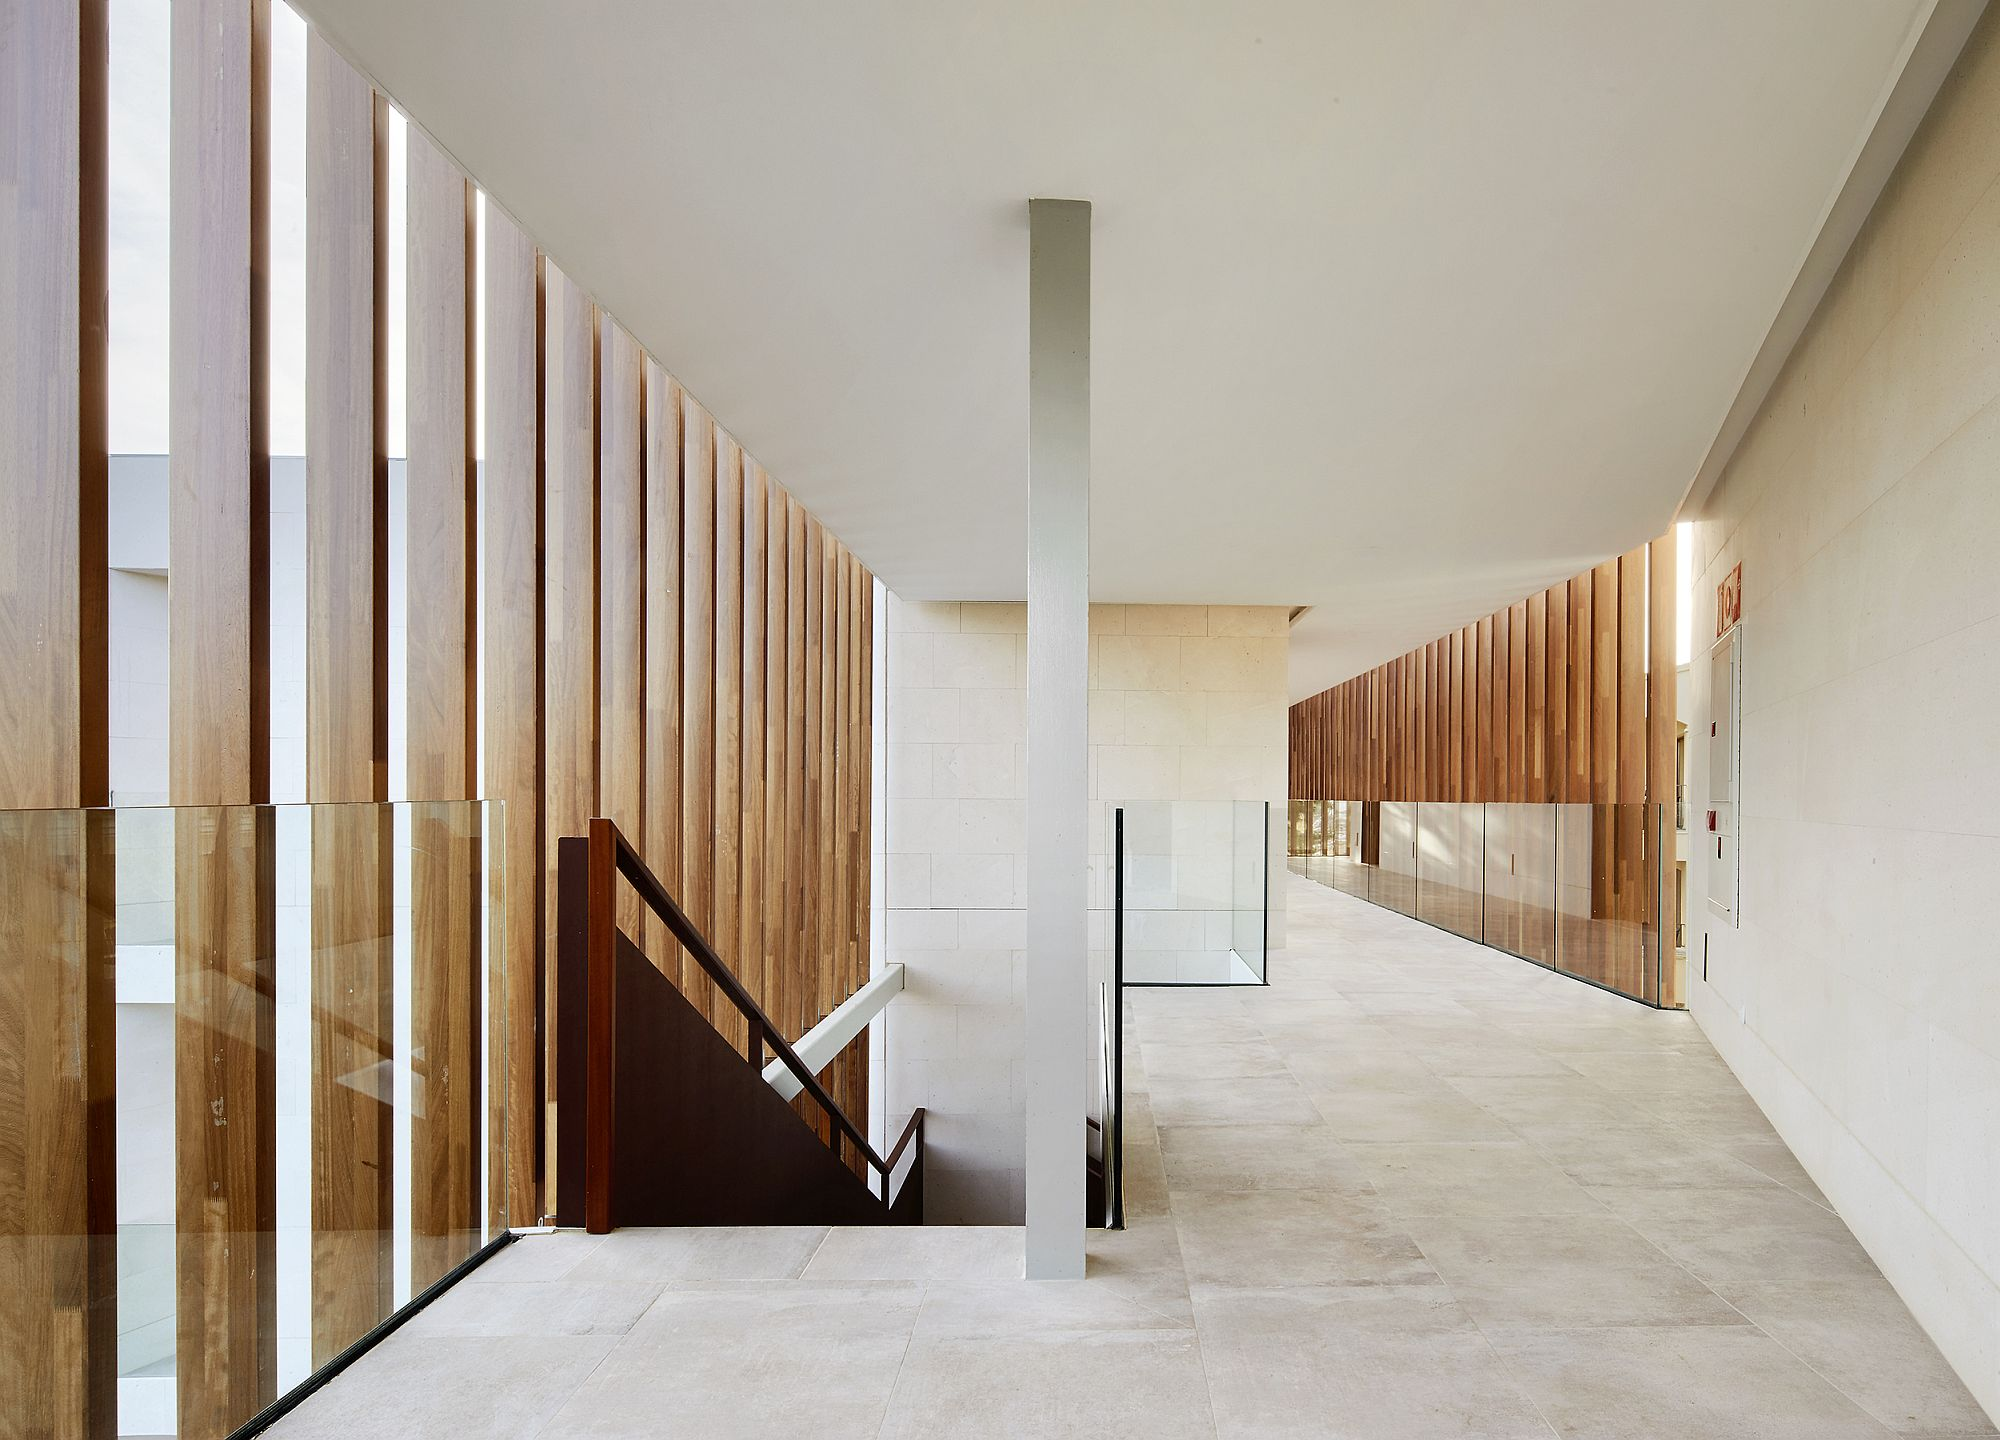 VENIS-NEWPORT-NATURAL-tiles-give-the-interior-an-inviting-look